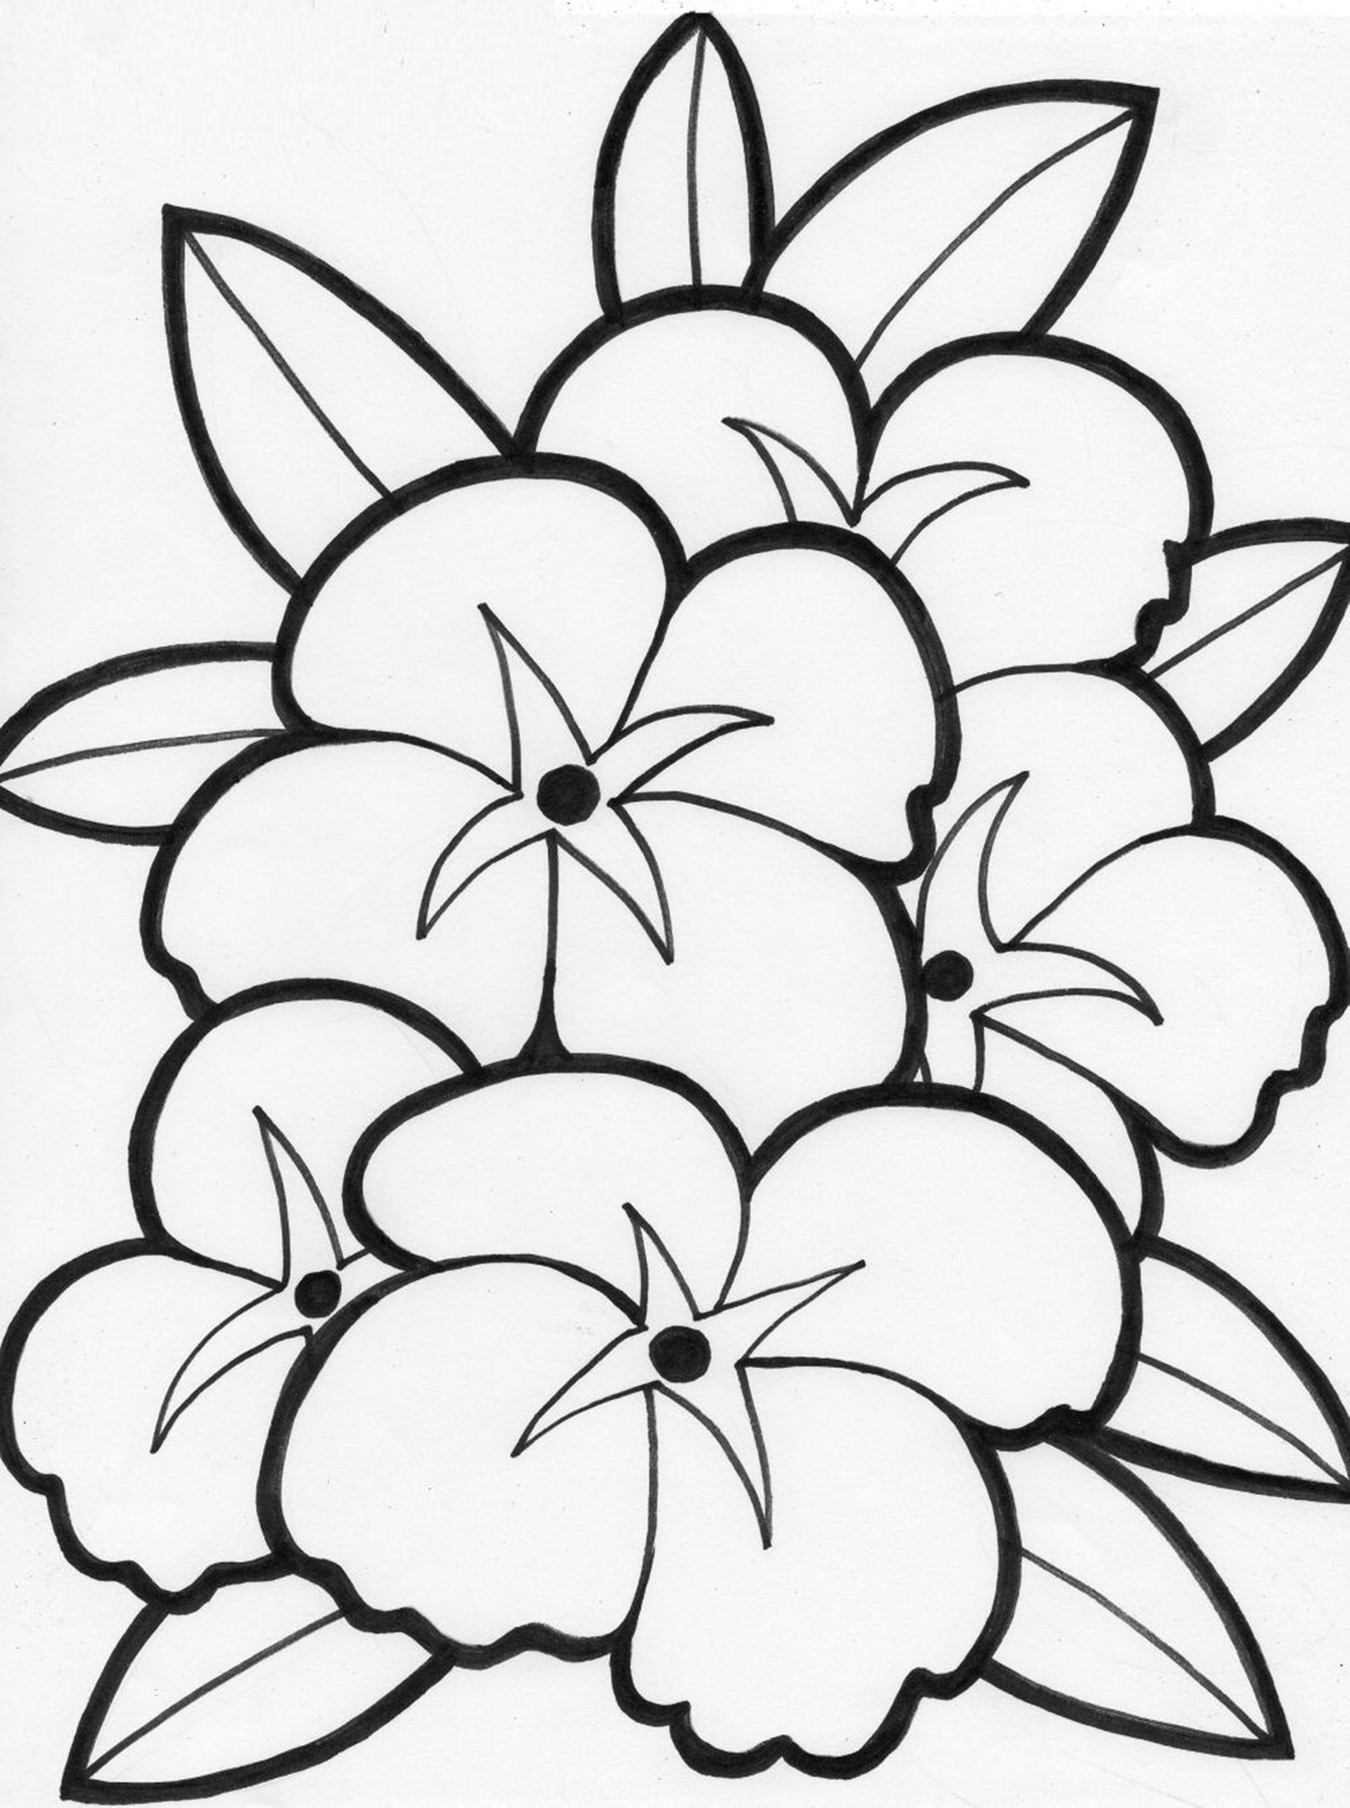 flower coloring sheets free spring flower coloring pages to download and print for free flower coloring sheets free